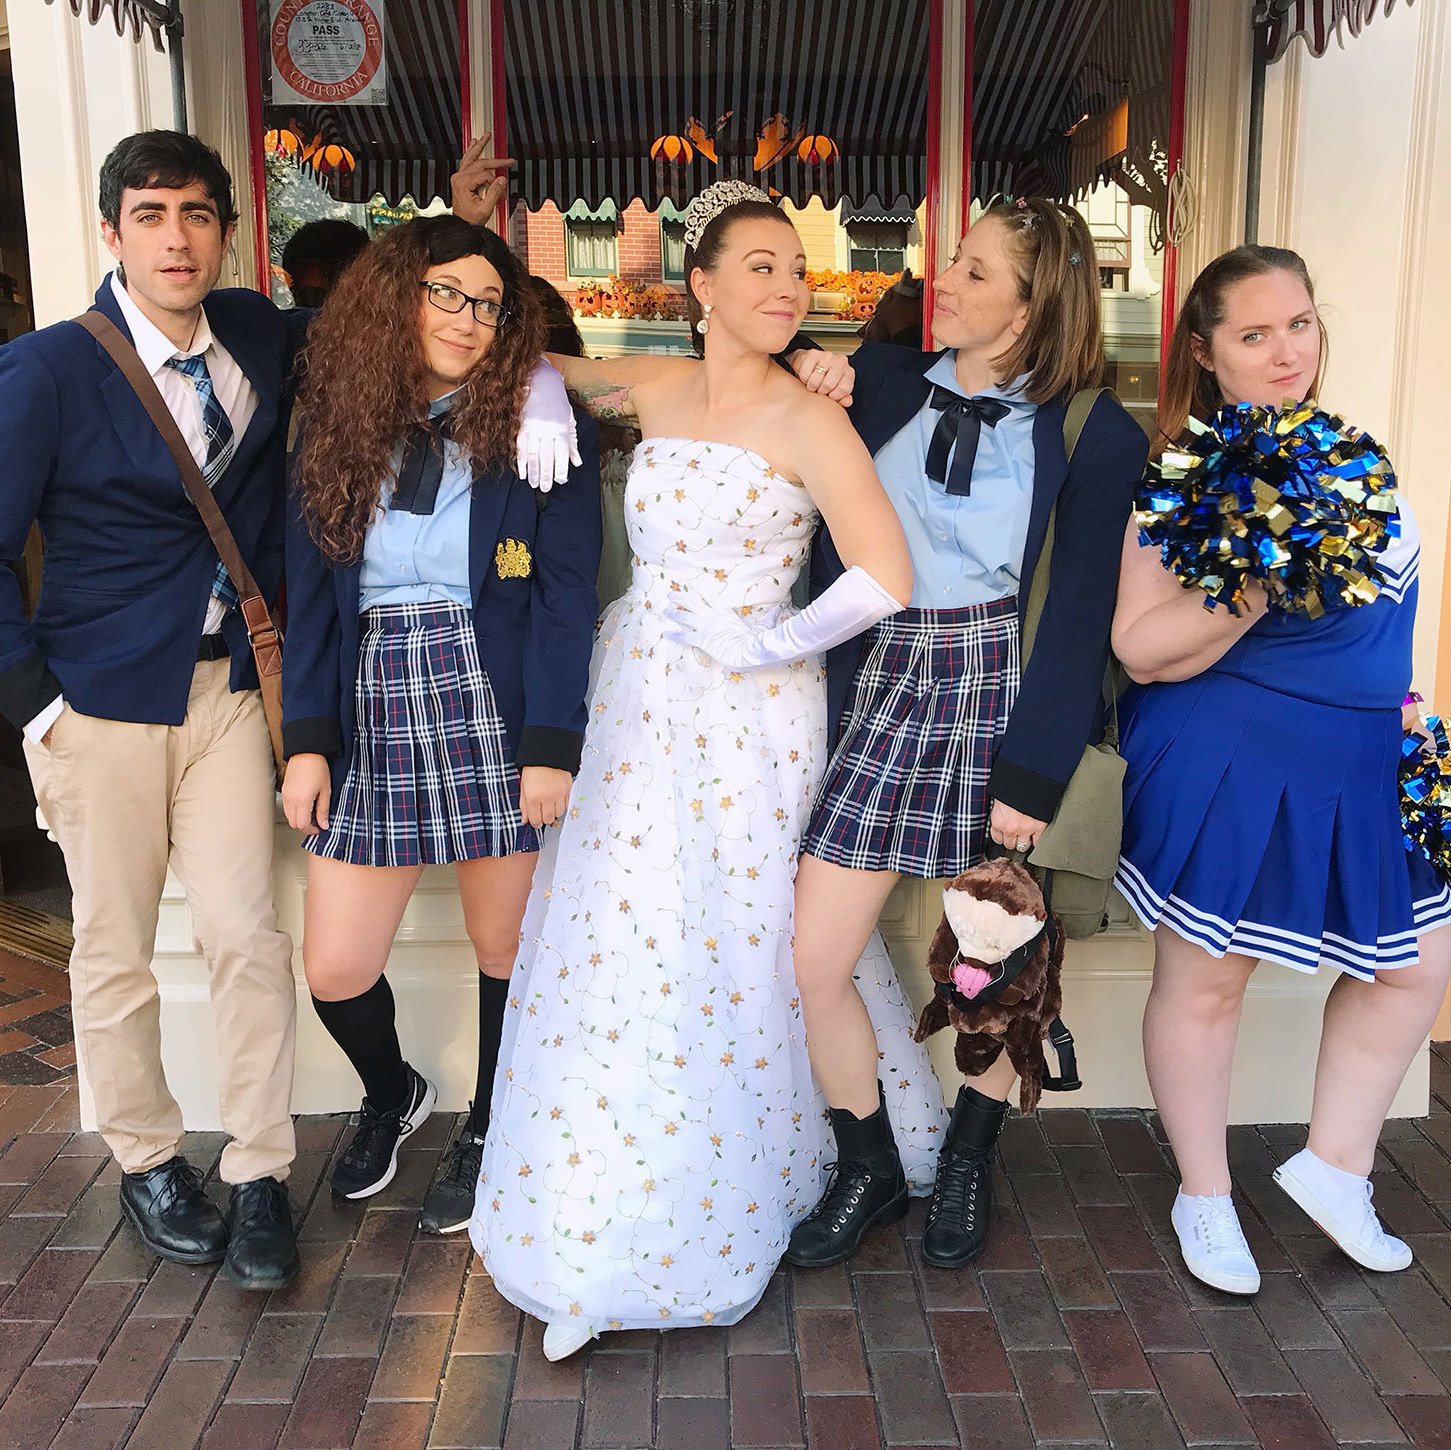 Shut Up! Shut Up! This Princess Diaries Group Halloween Costume is So Good